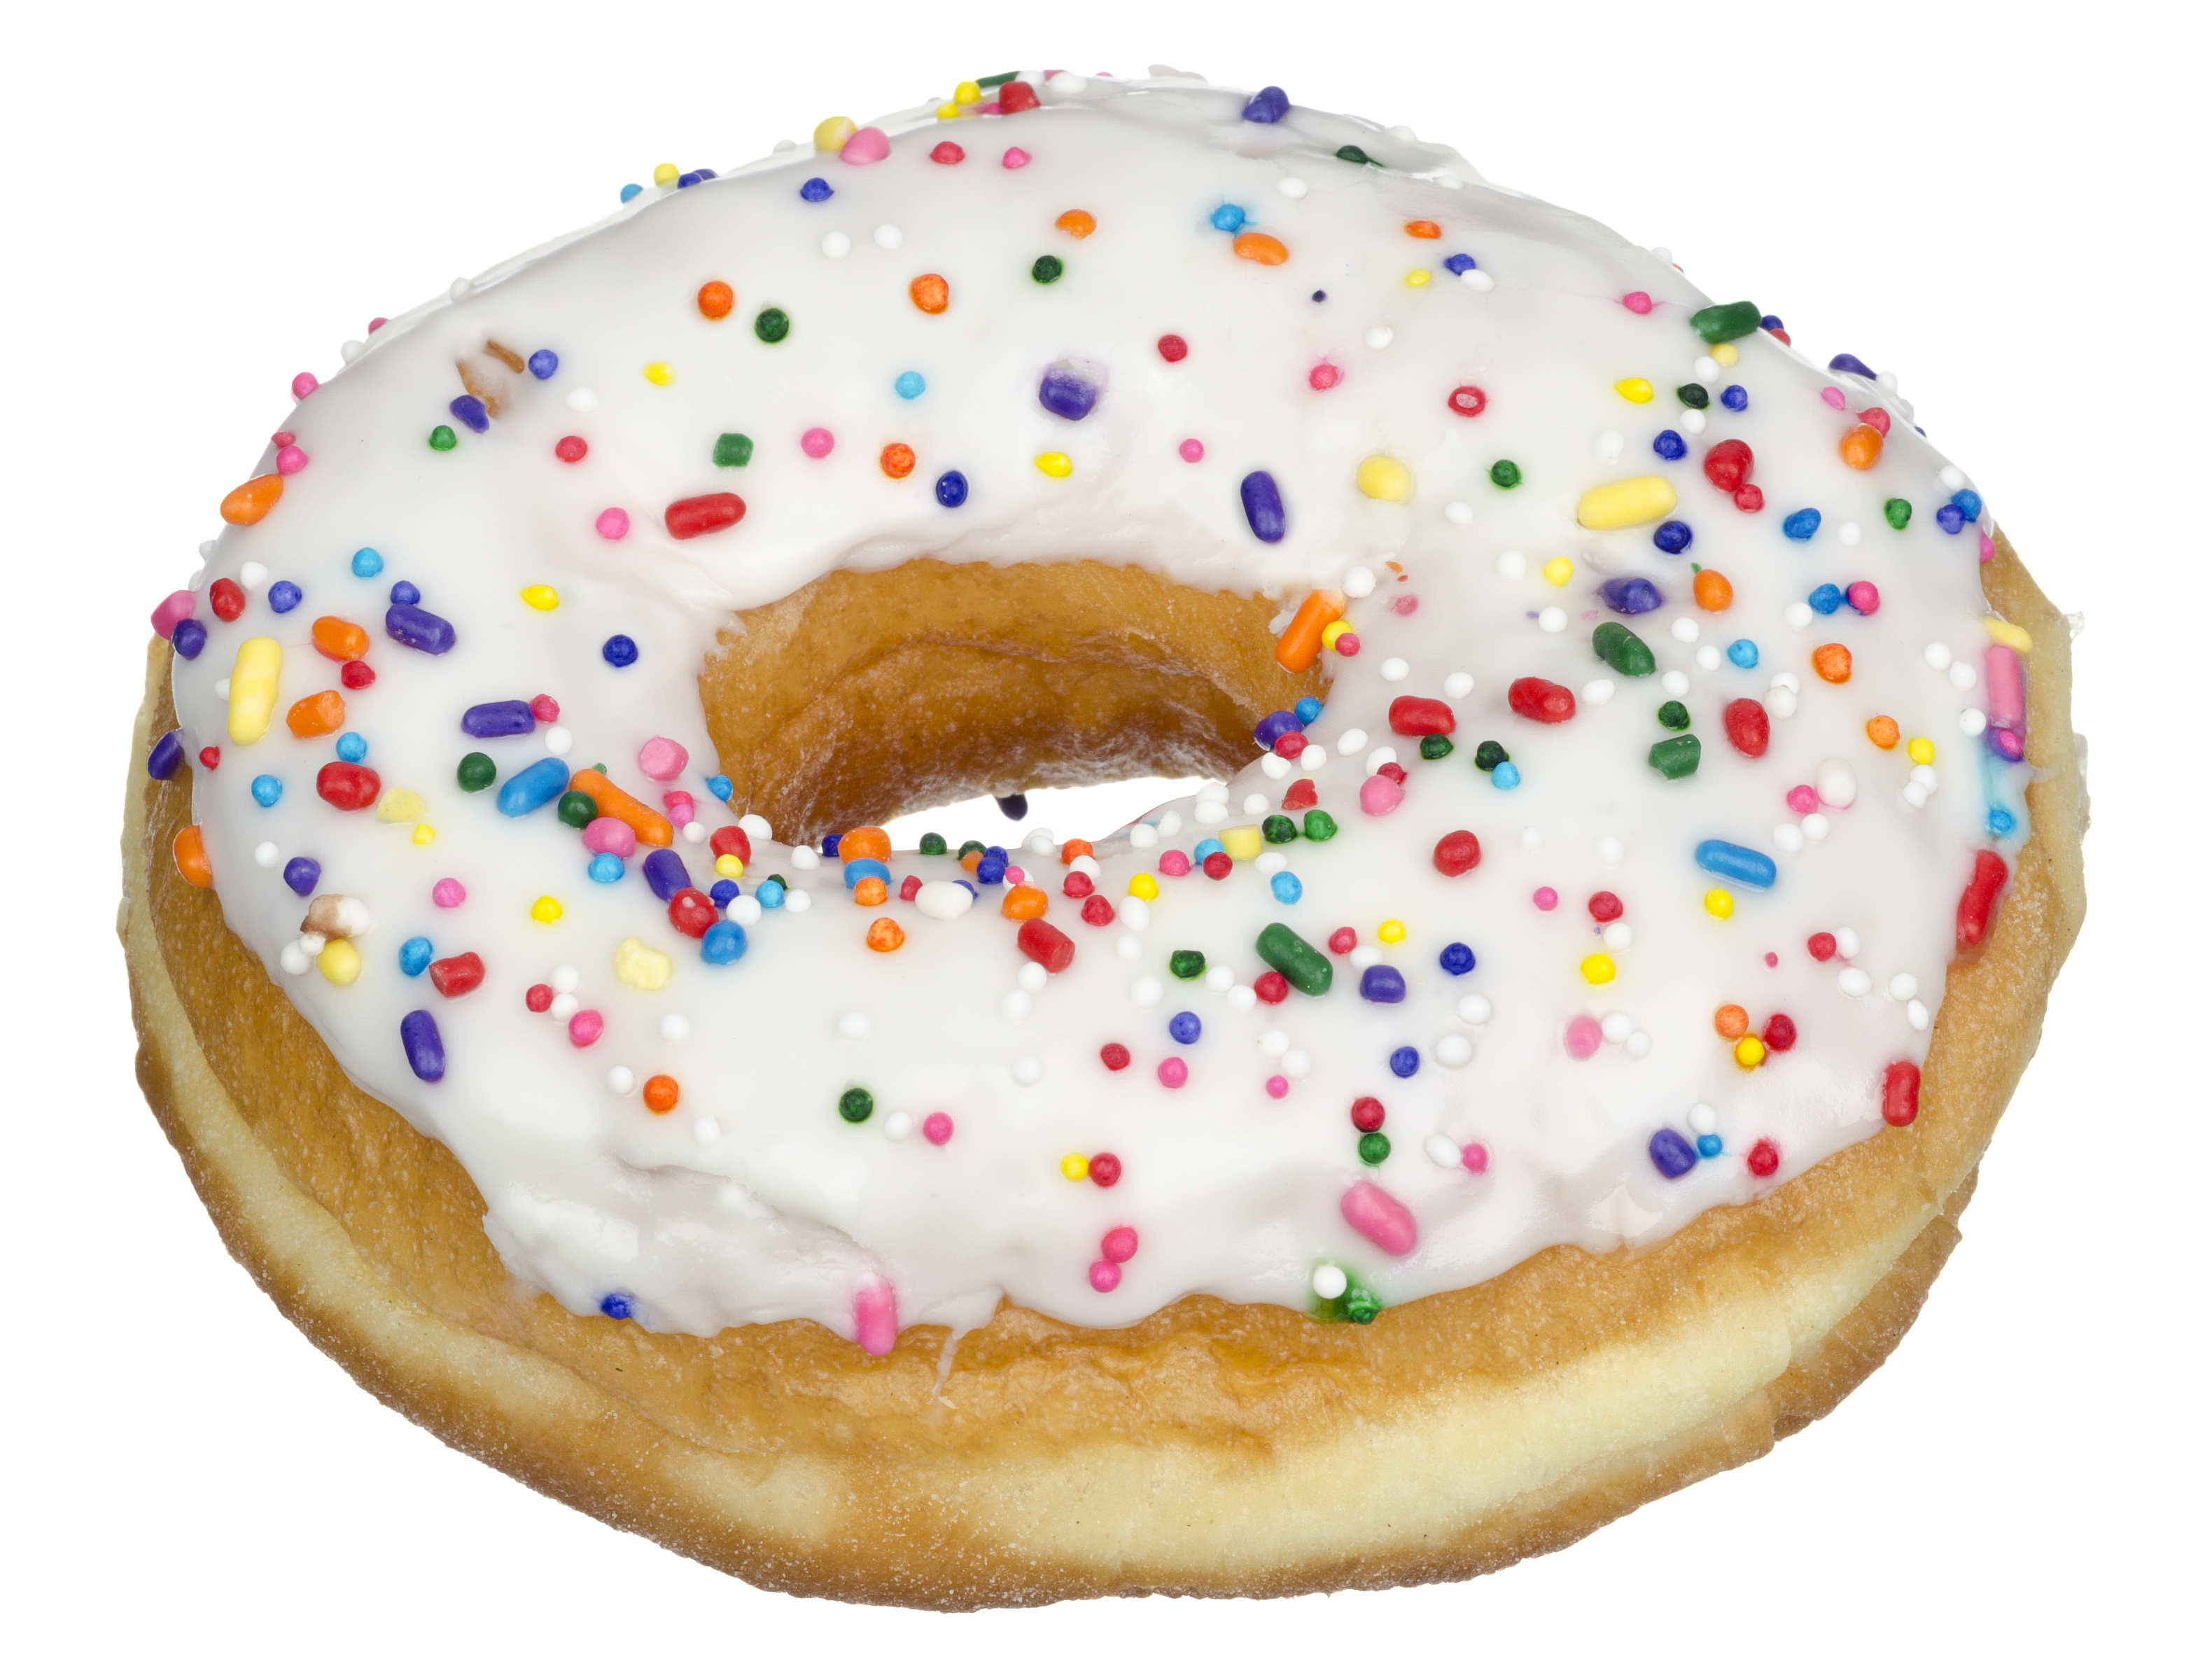 File:Dunkin-Donuts-Vanilla-Sprinkled.jpg - Wikimedia Commons